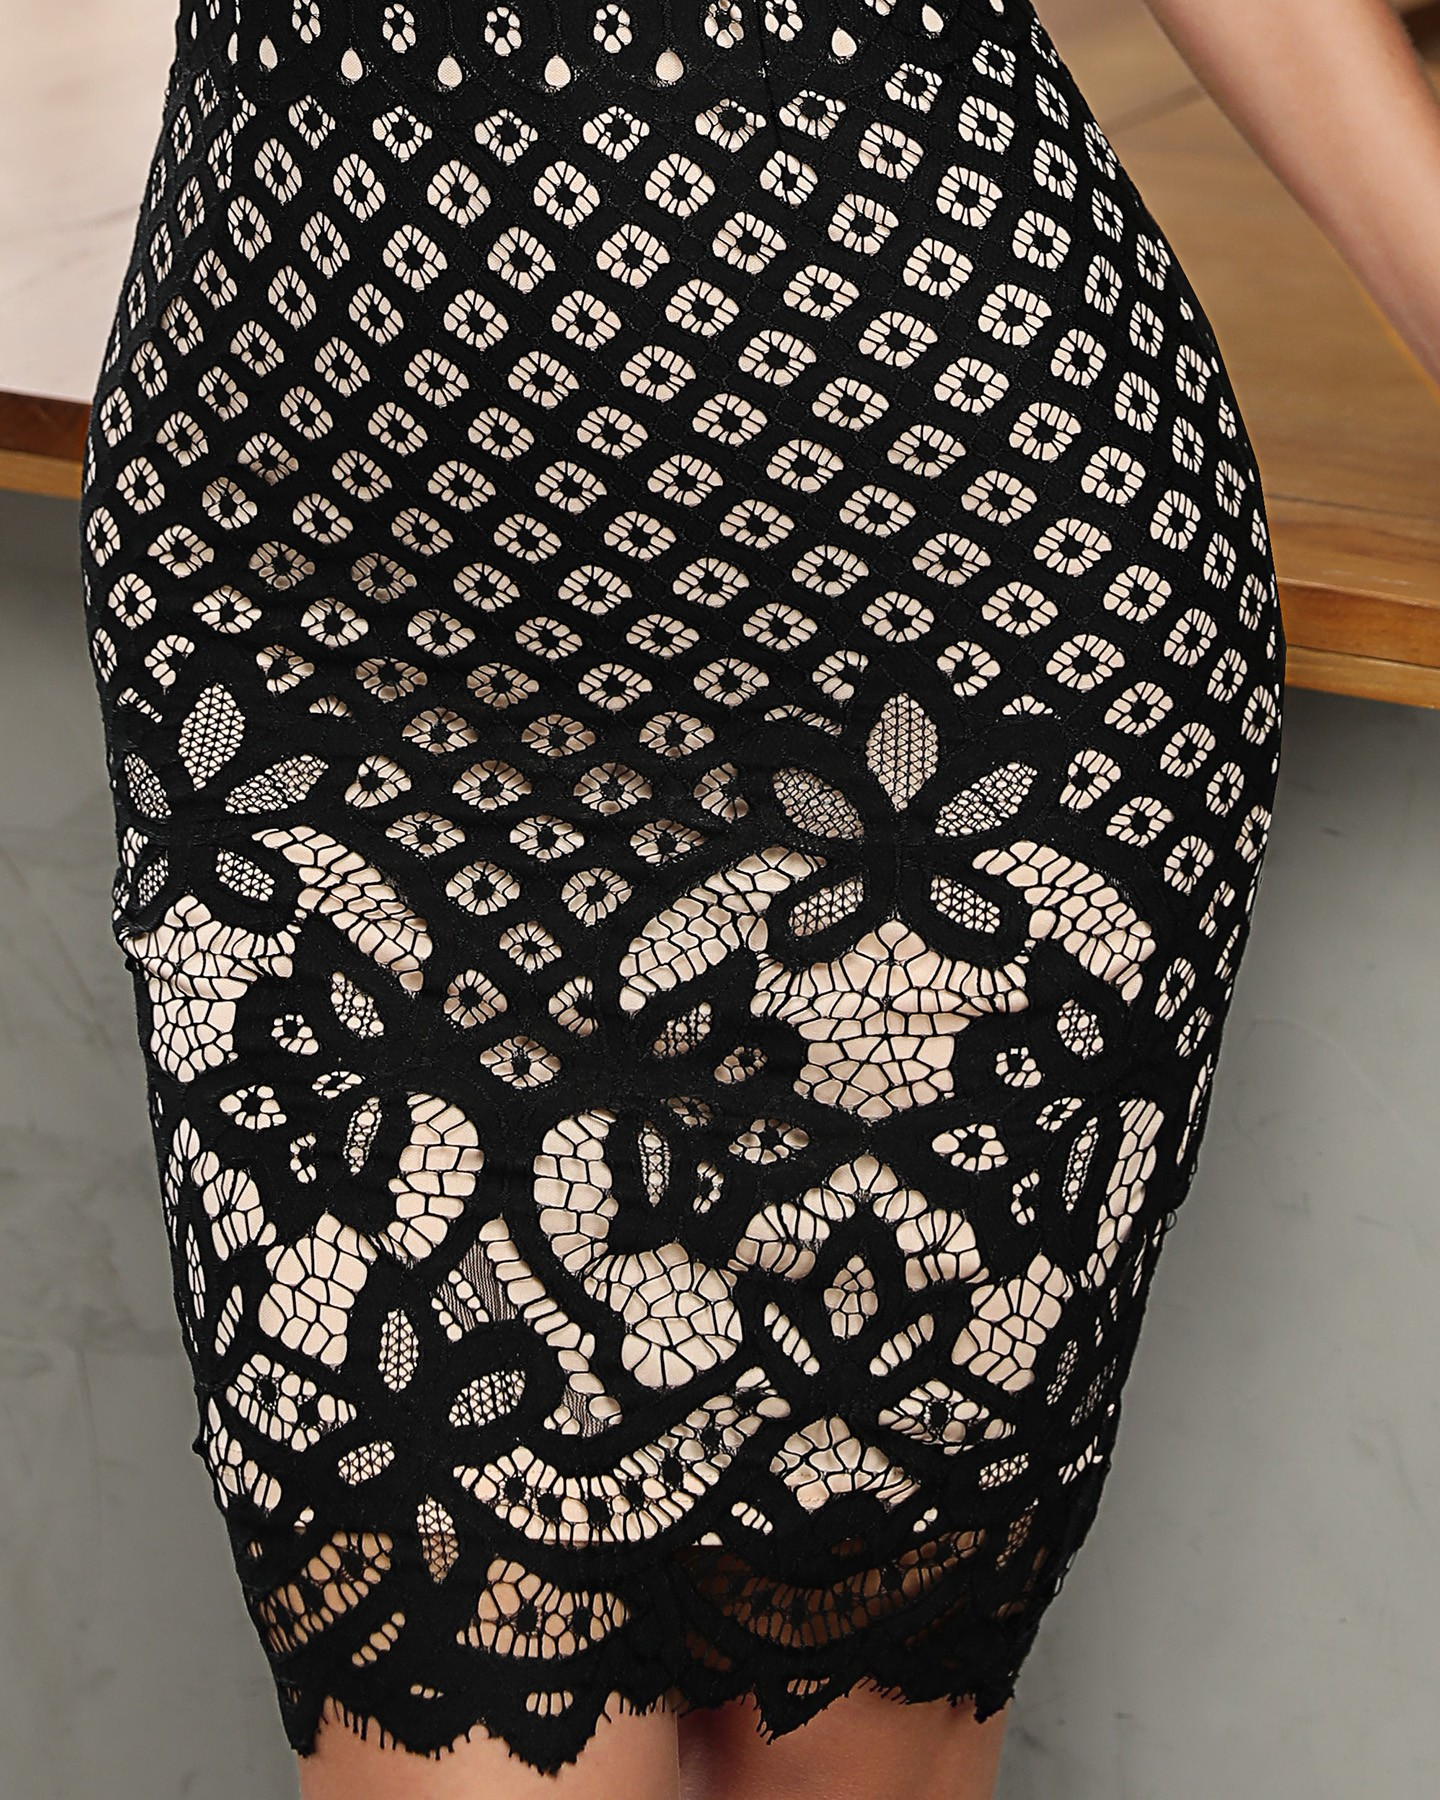 Black Hollow Out Lace Stitching Party Dress 9